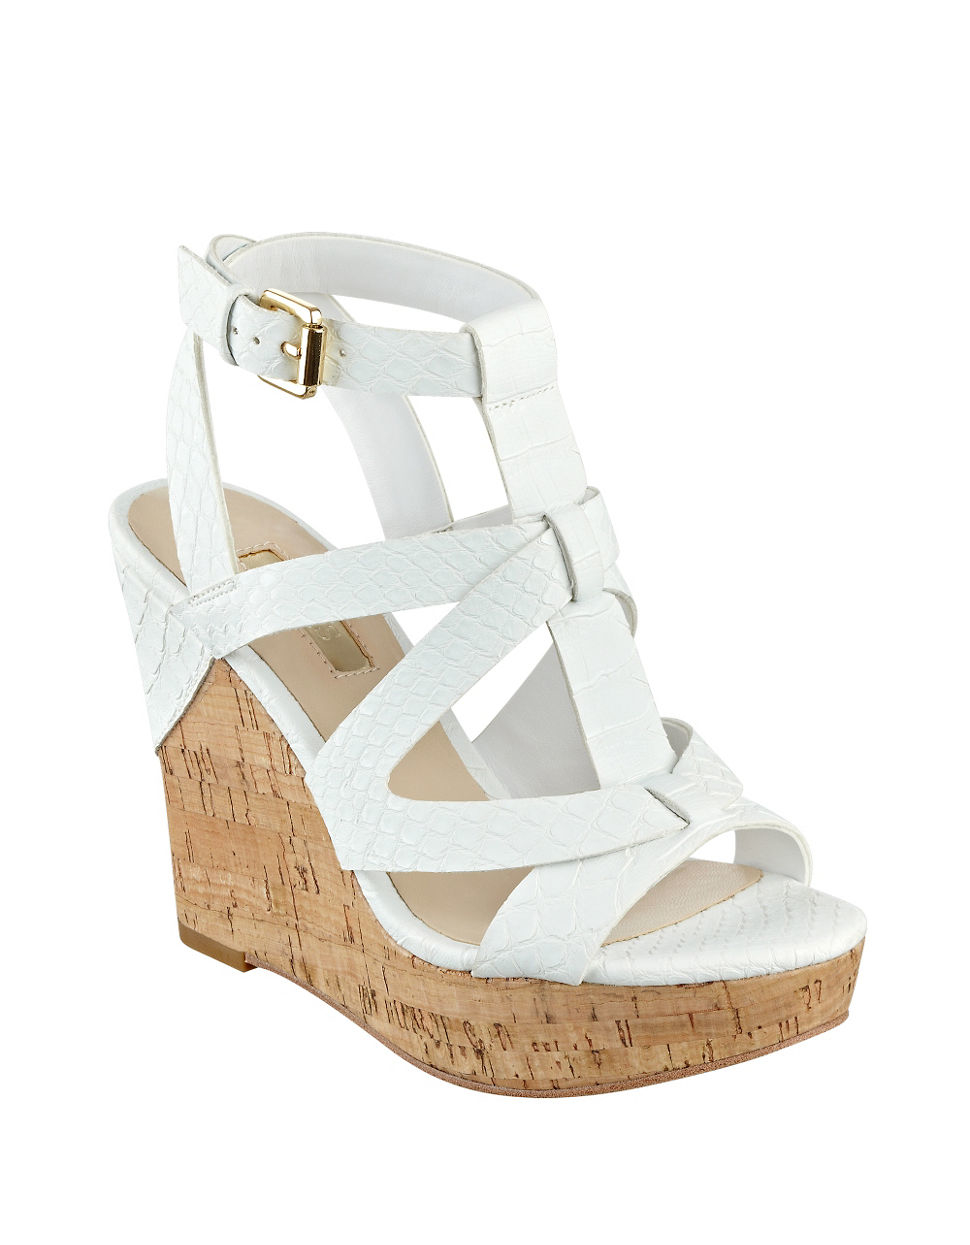 7b5c54dfa8 Guess Harlea Platform Wedge Sandals in White - Lyst